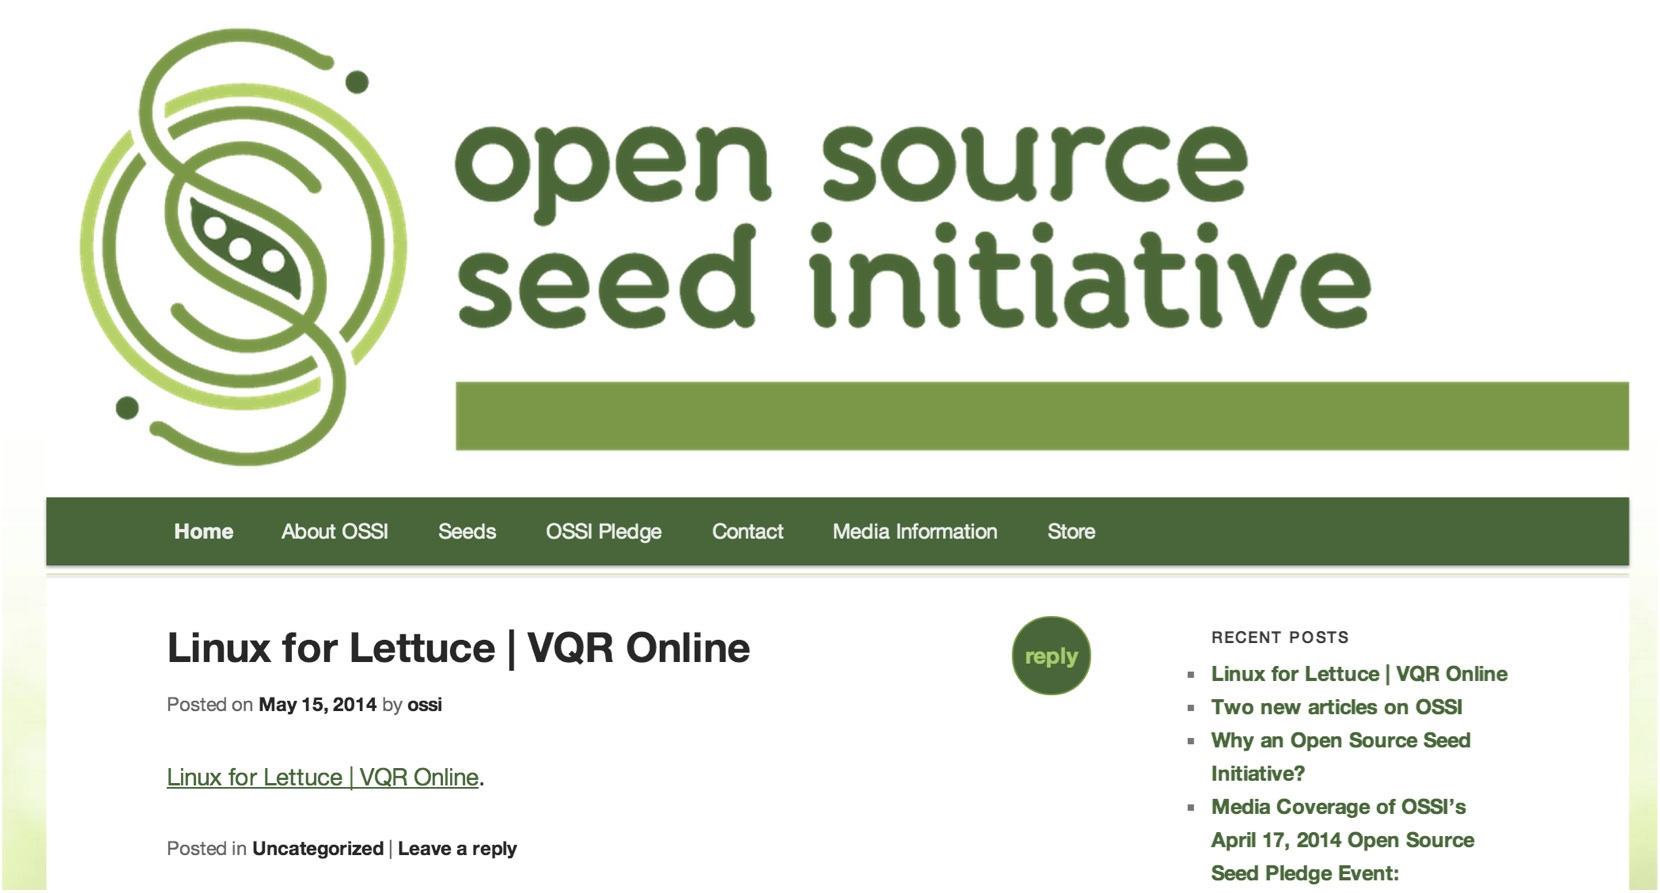 paul stacey open source seed initiative web site